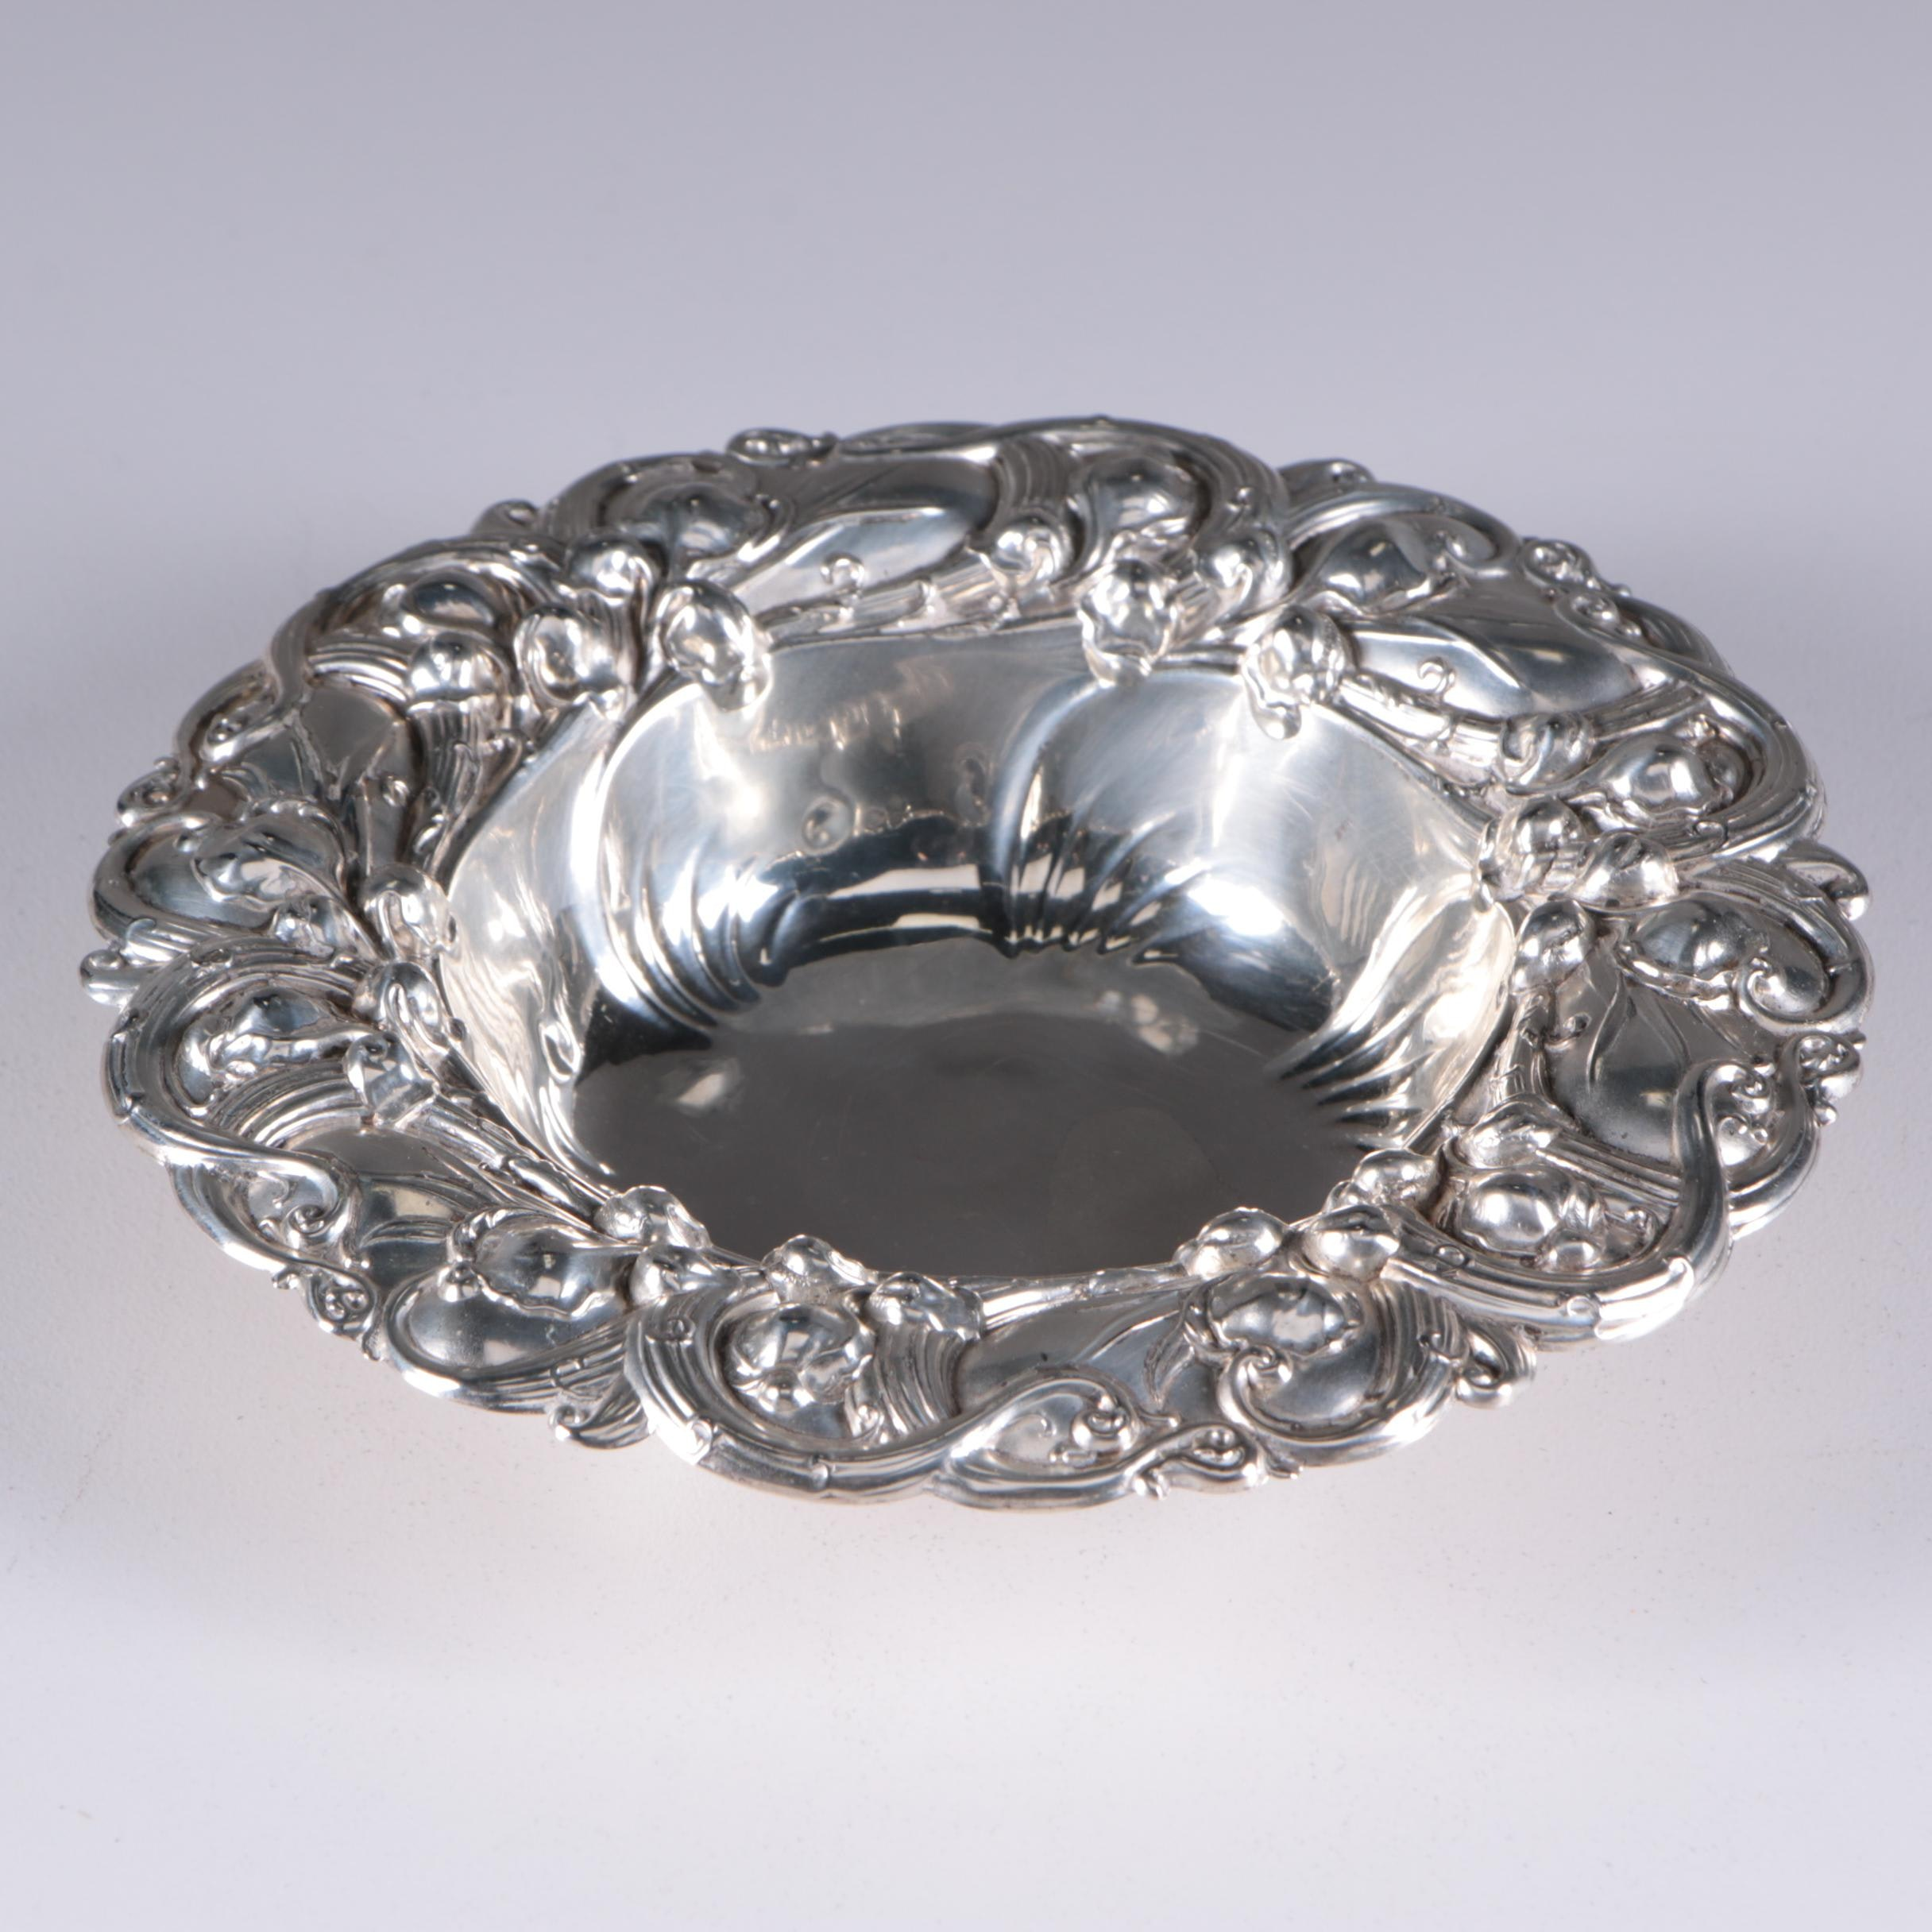 """Whiting """"Lily of the Valley"""" Sterling Silver Bonbon Bowl, Early 20th Century"""